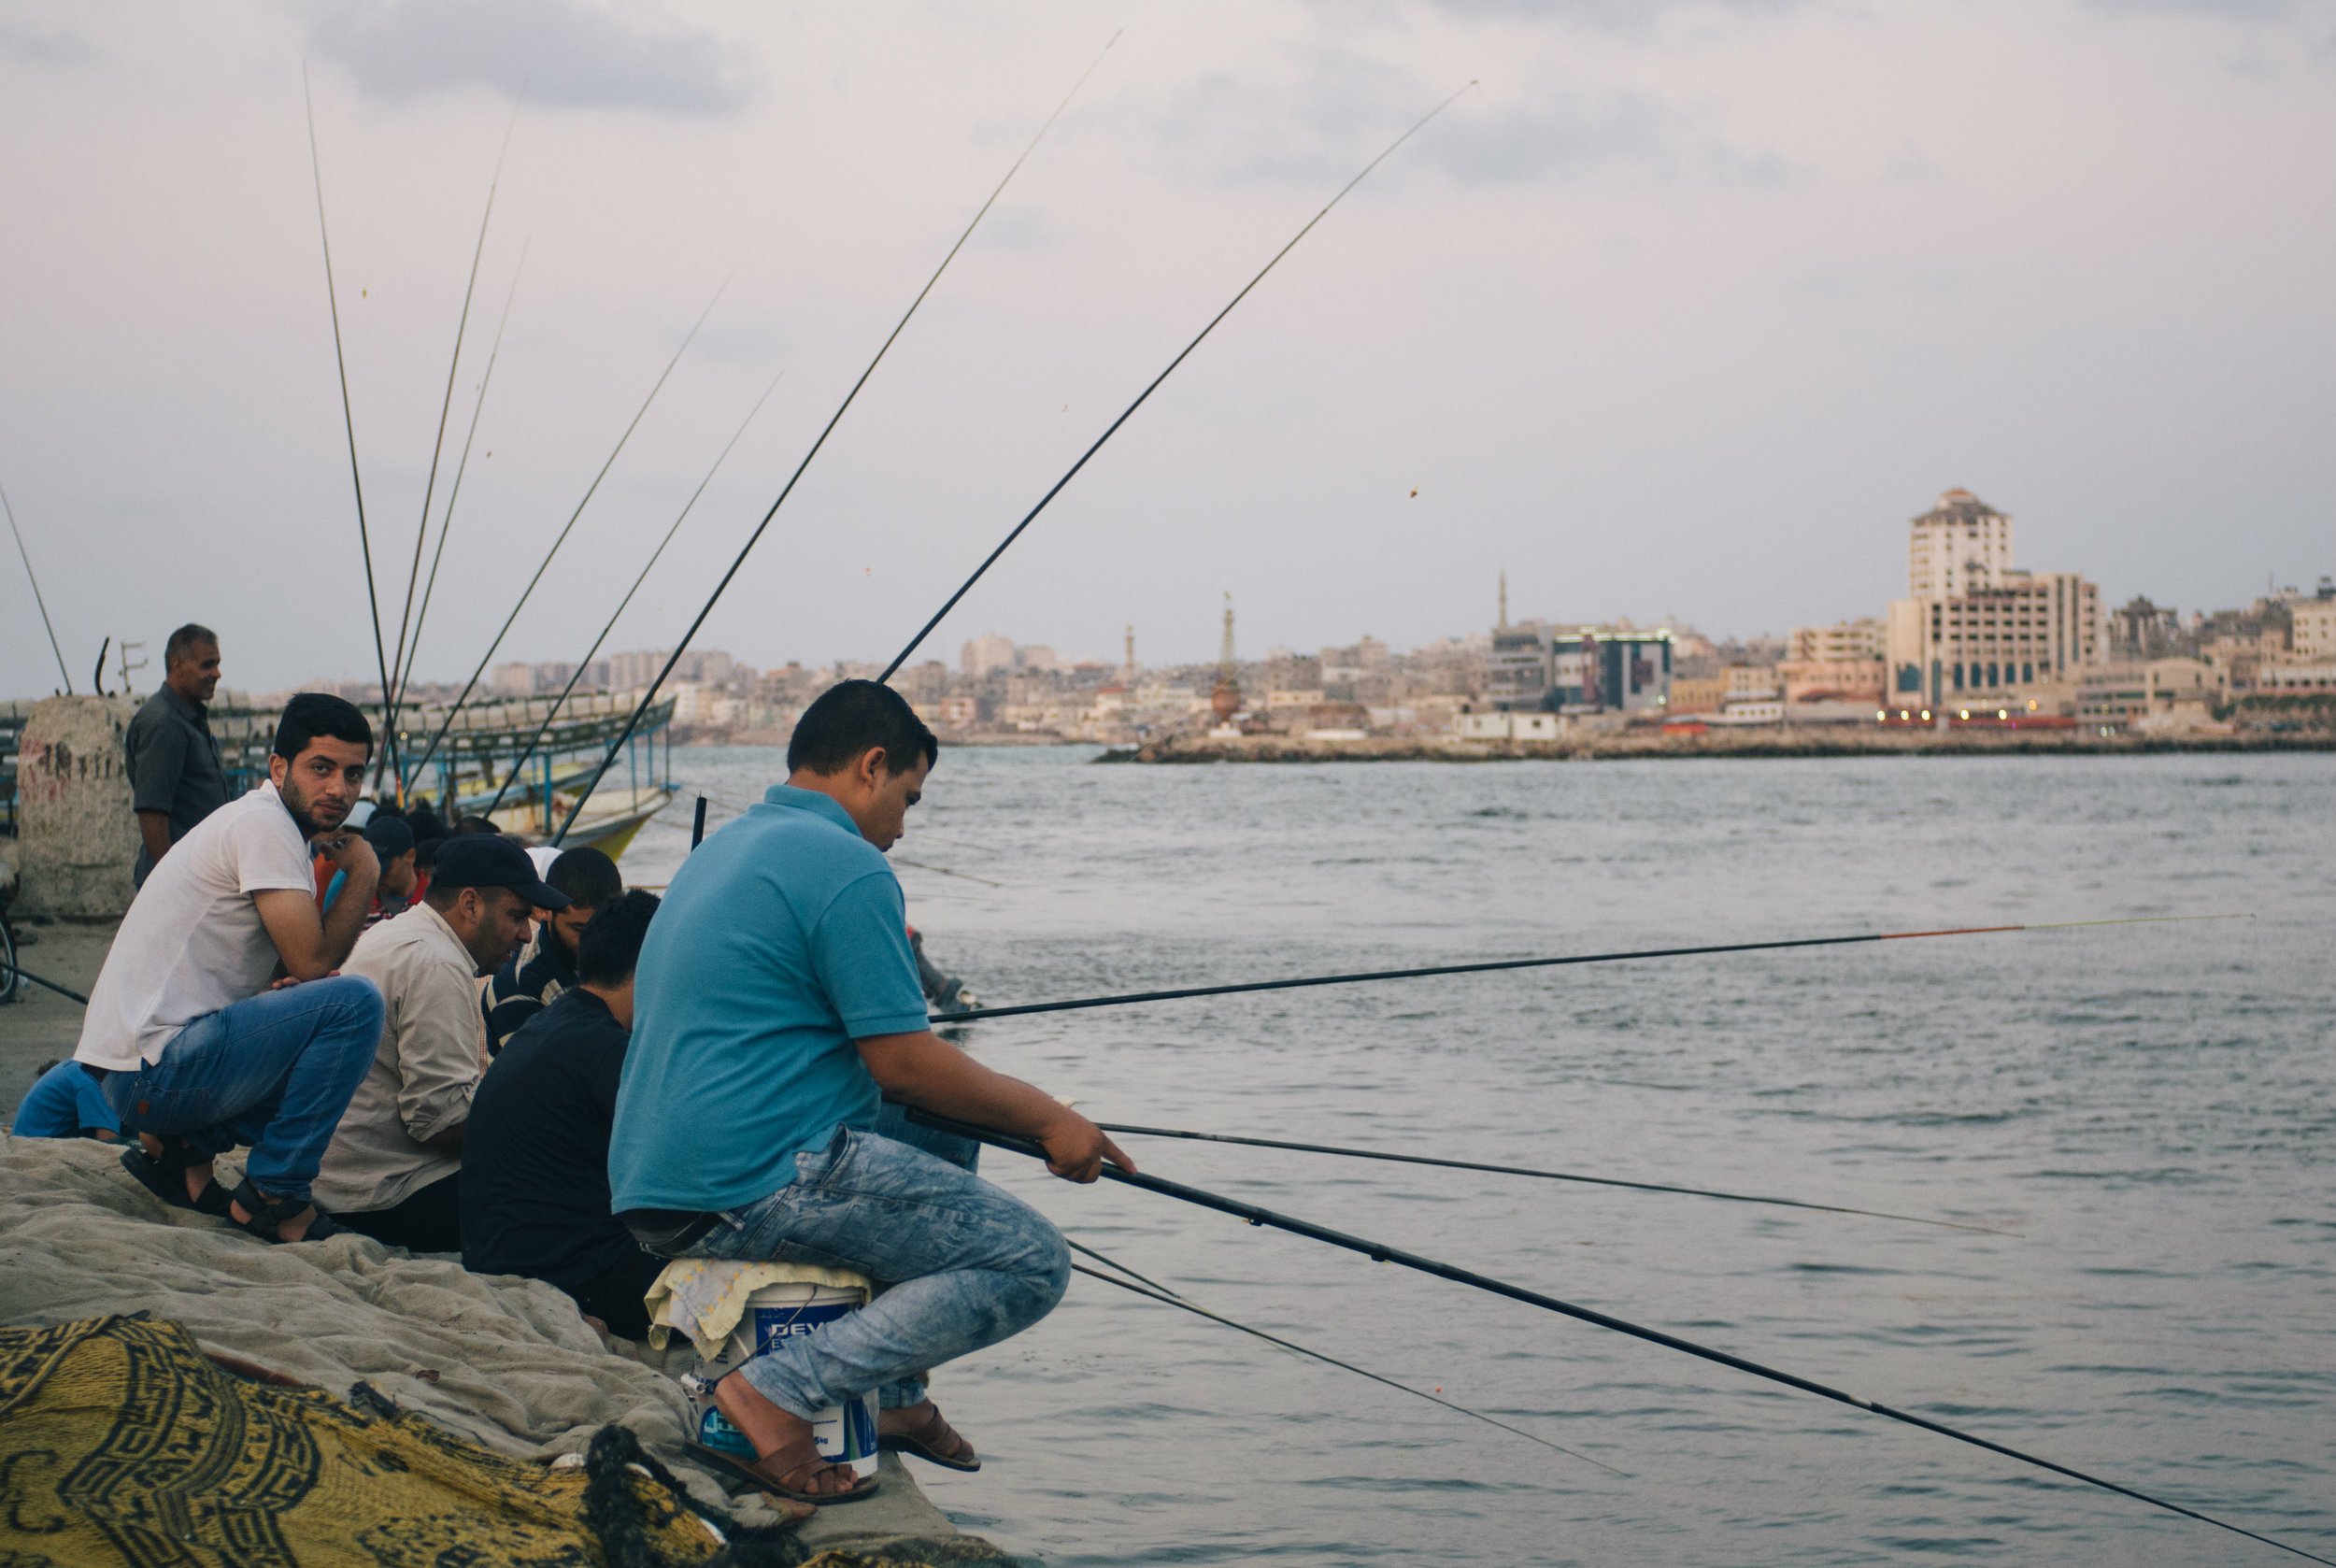 Palestinian men sit together at Gaza's port when they don't have work, which is often for the enclave's many unemployed, drinking coffee as they watch their rods (Kaamil Ahmed/MEE)